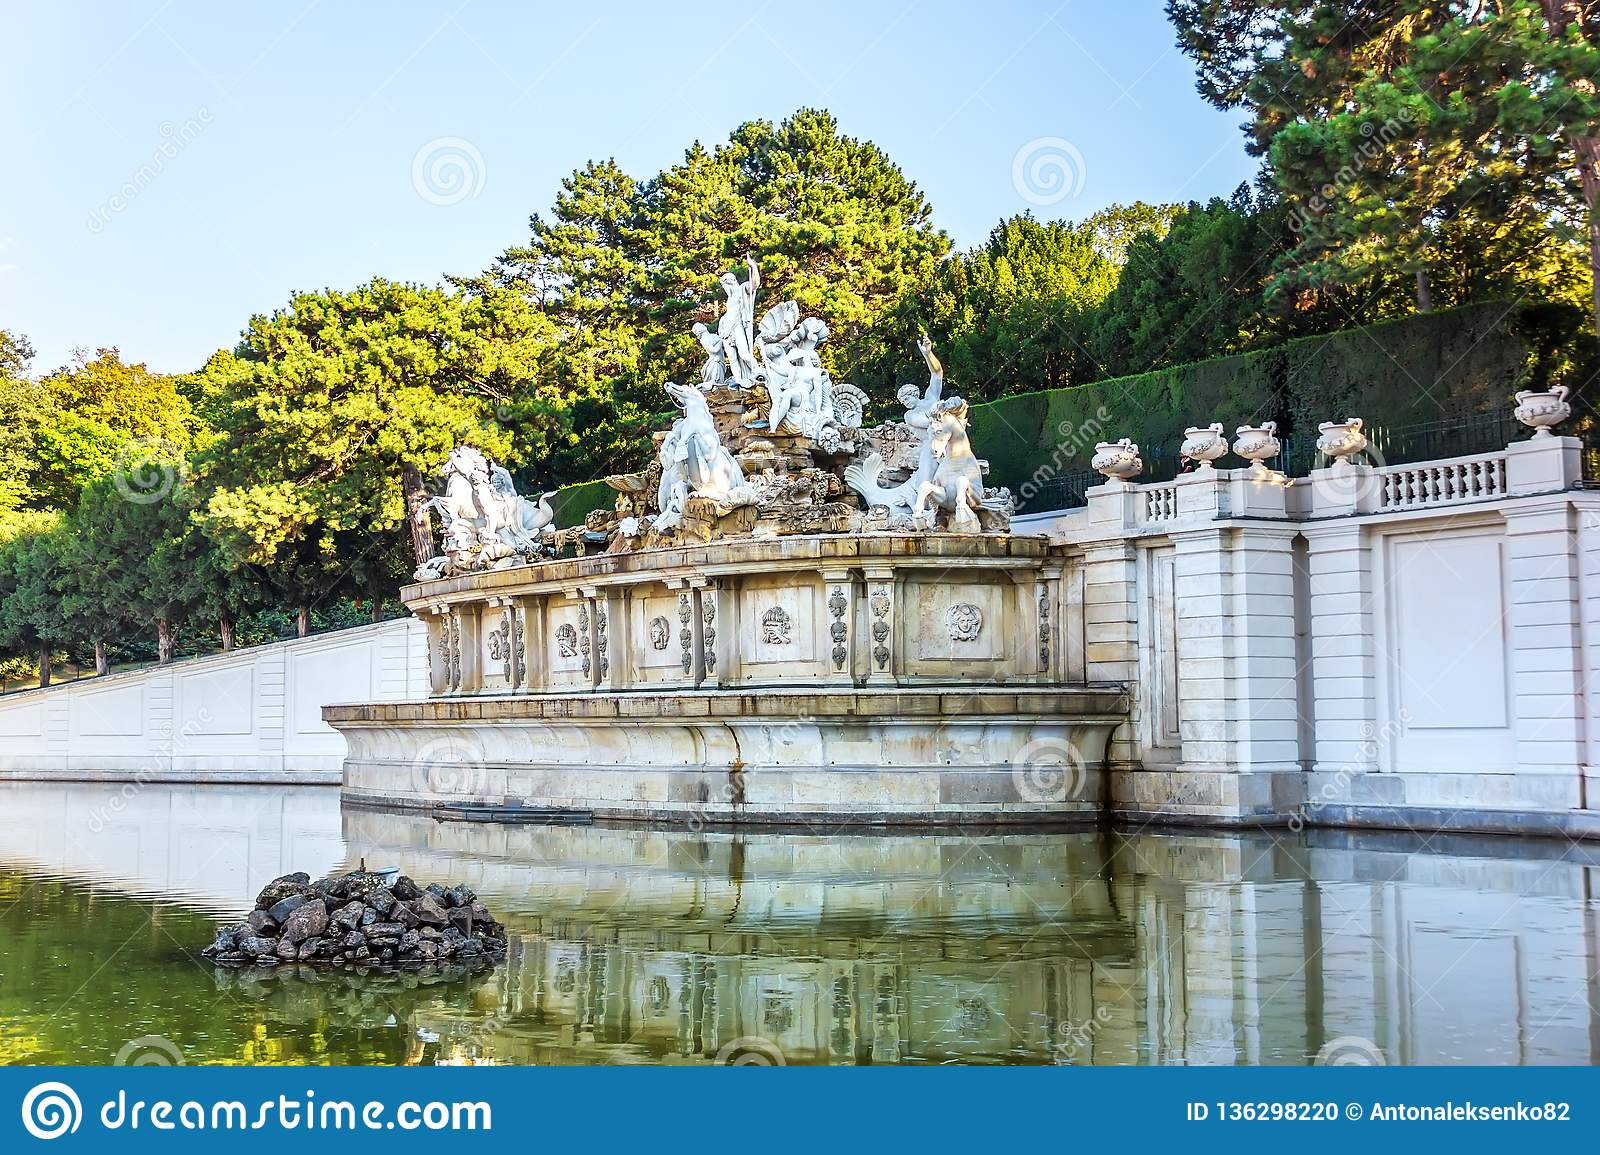 The Neptune Fountain in the Schonbrunn Palace Park, Vienna